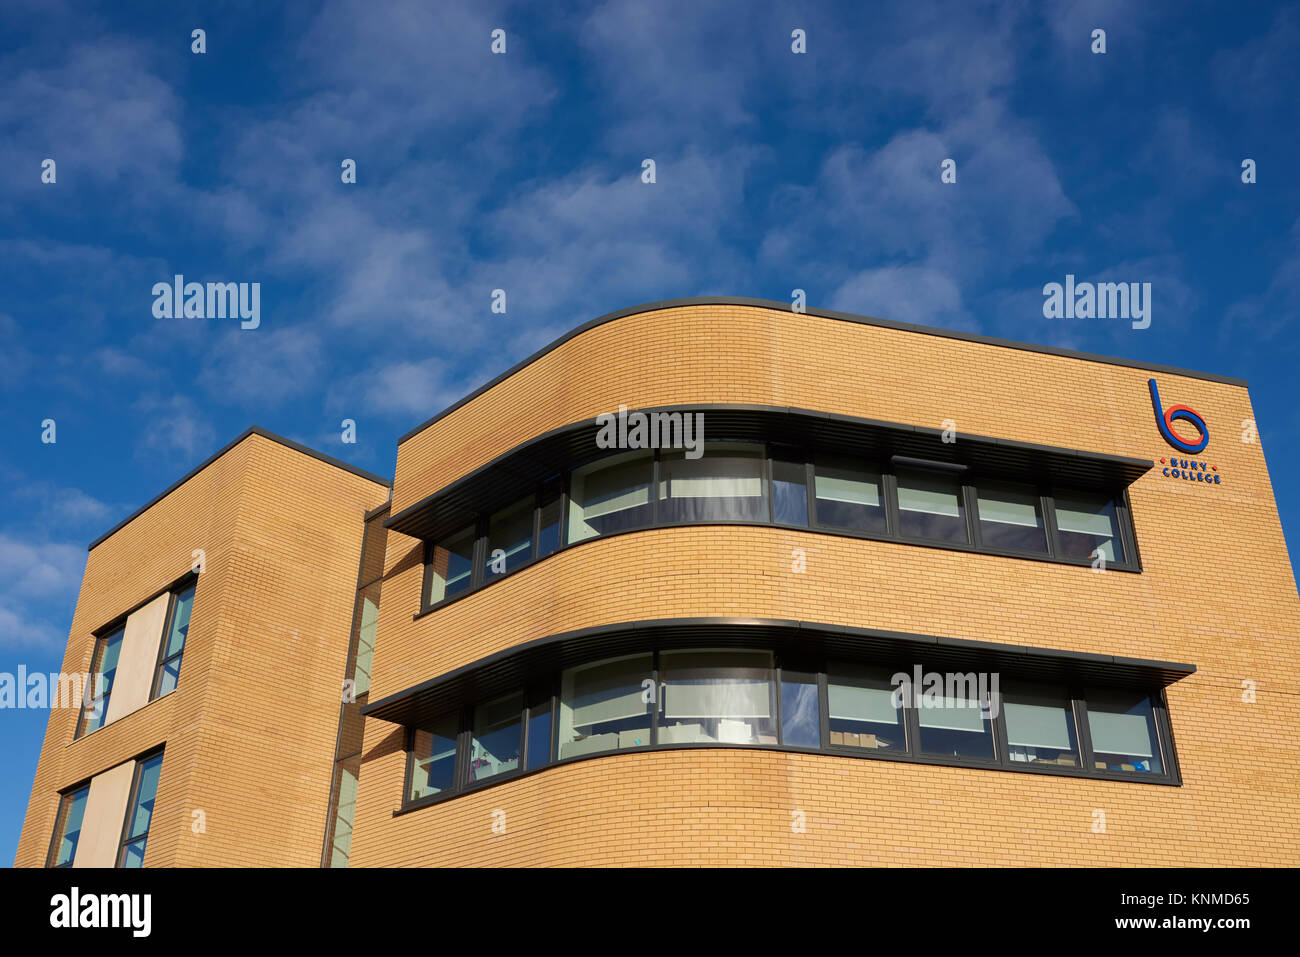 Sun shining on curved ribbon windows with solar shading or Brise Soleil in curved modern building facade in bury - Stock Image